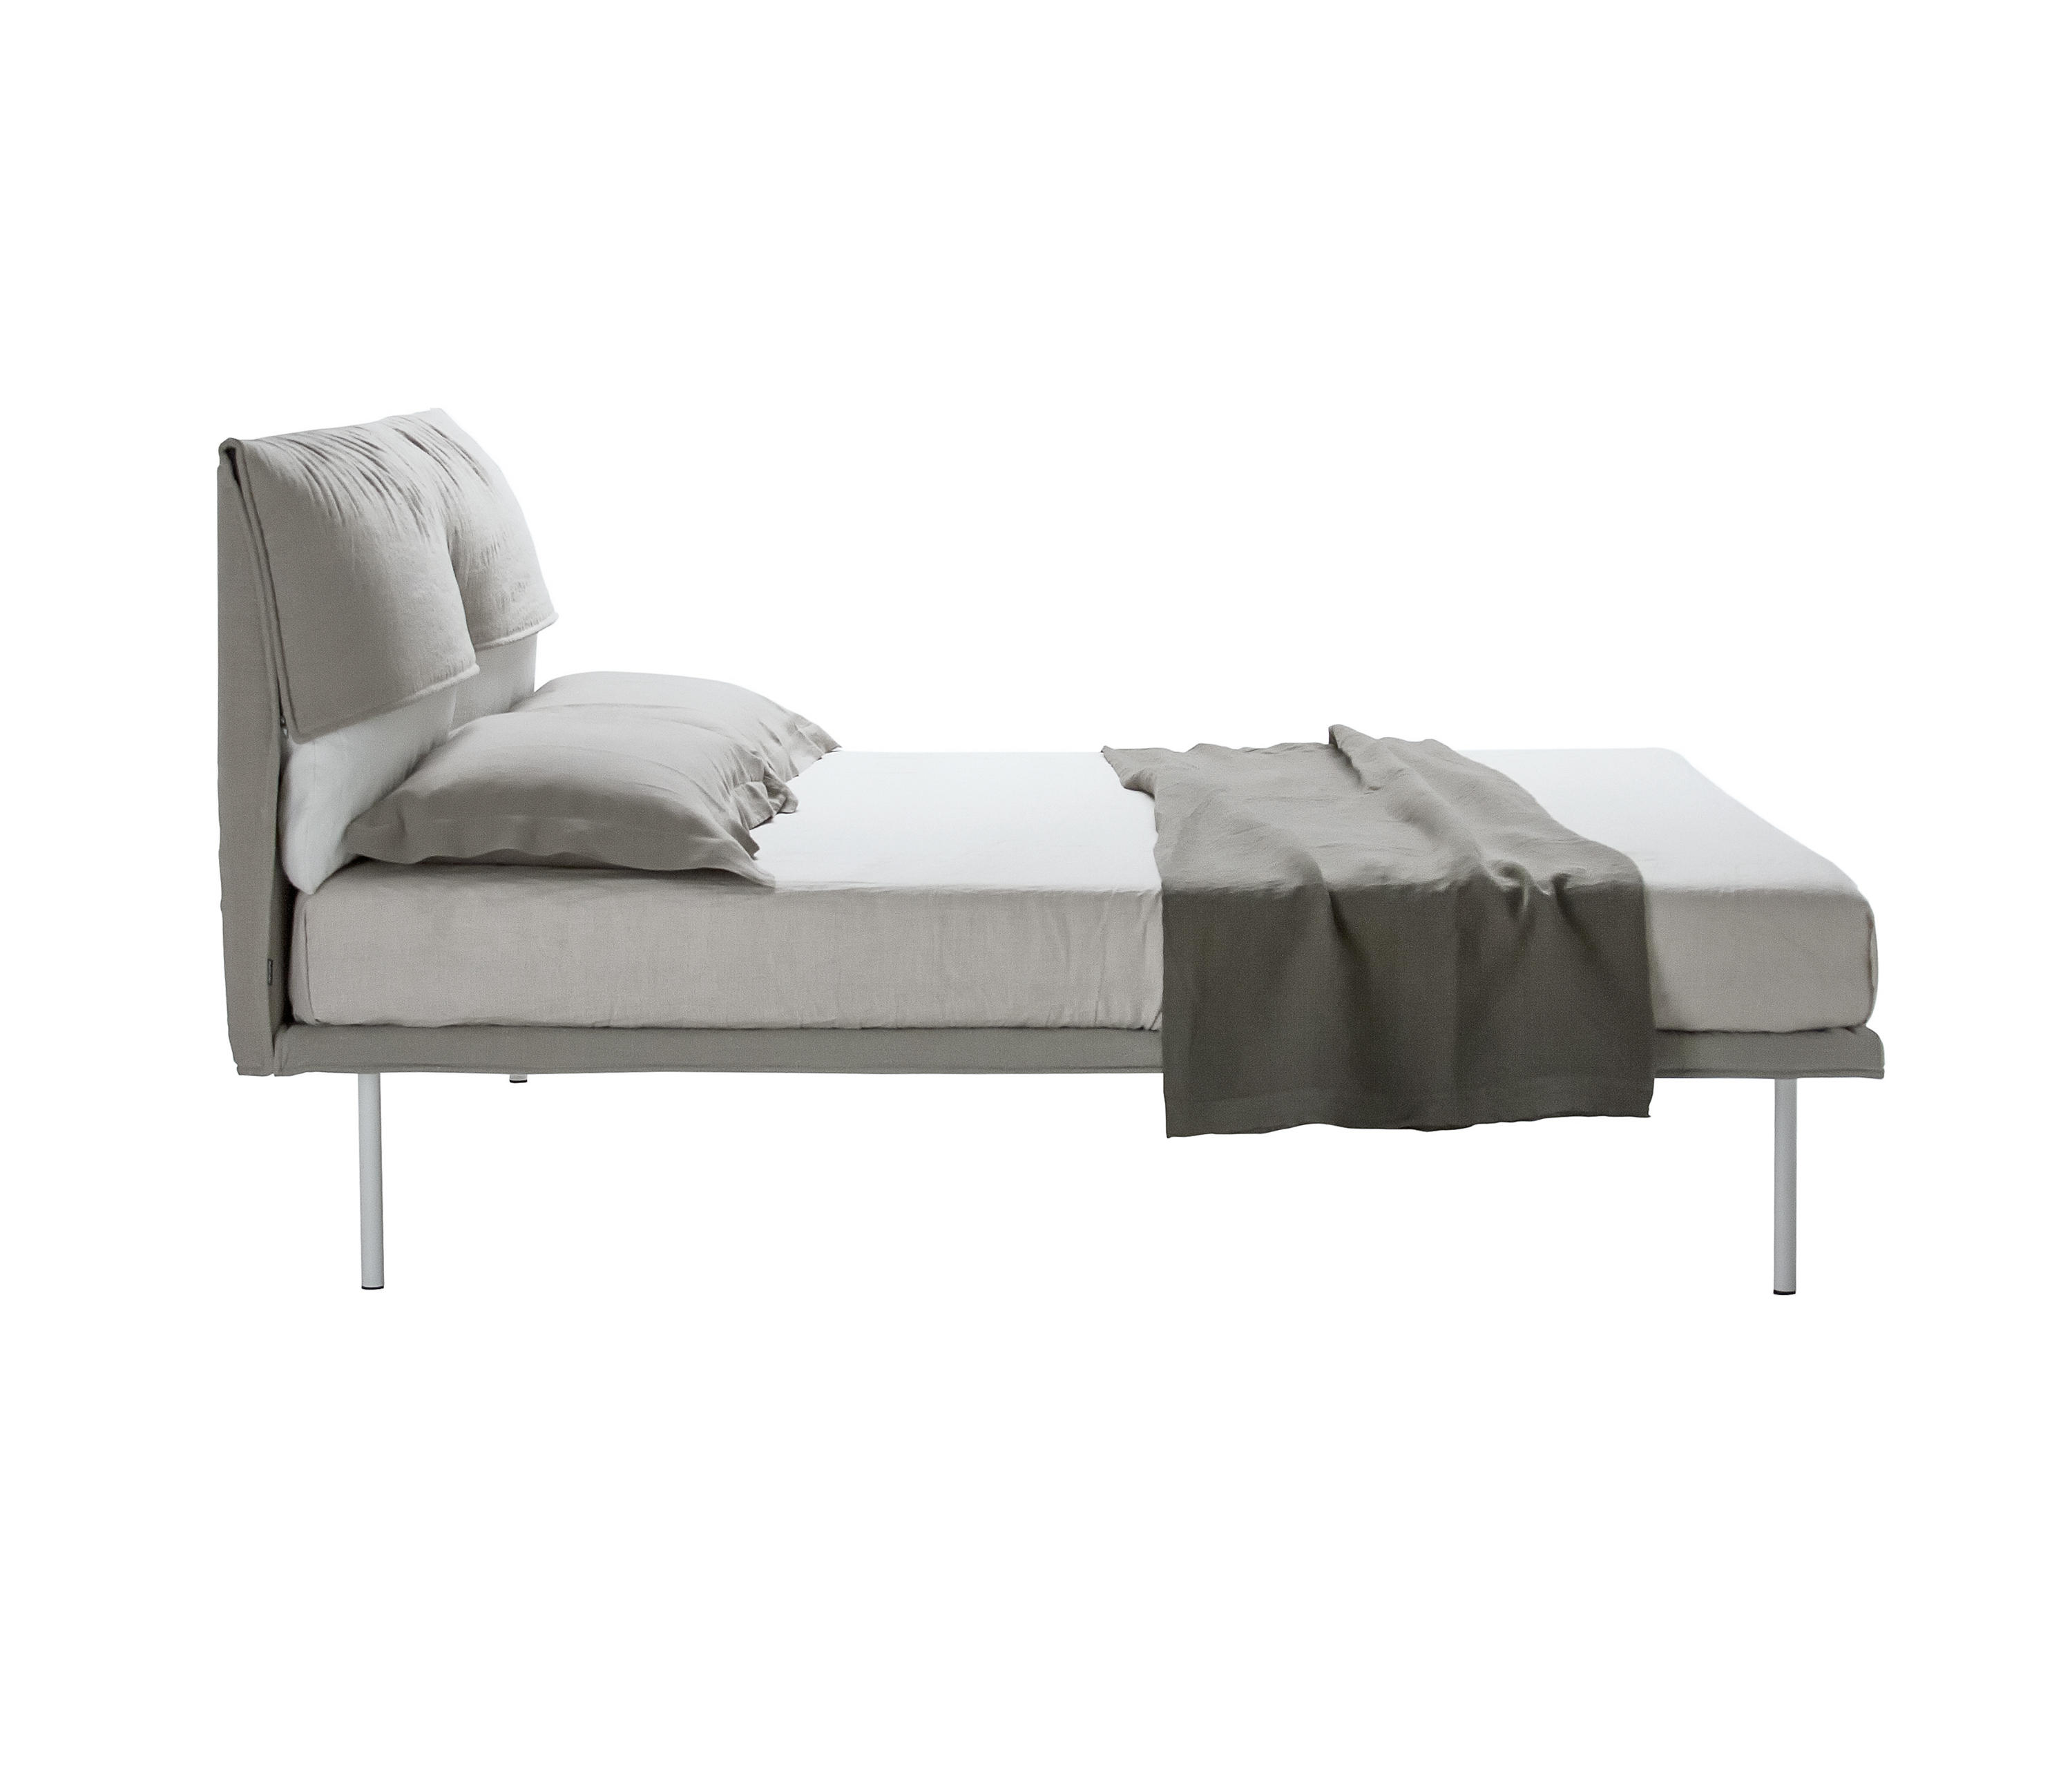 Coverbed 1710 Double Beds From Zanotta Architonic